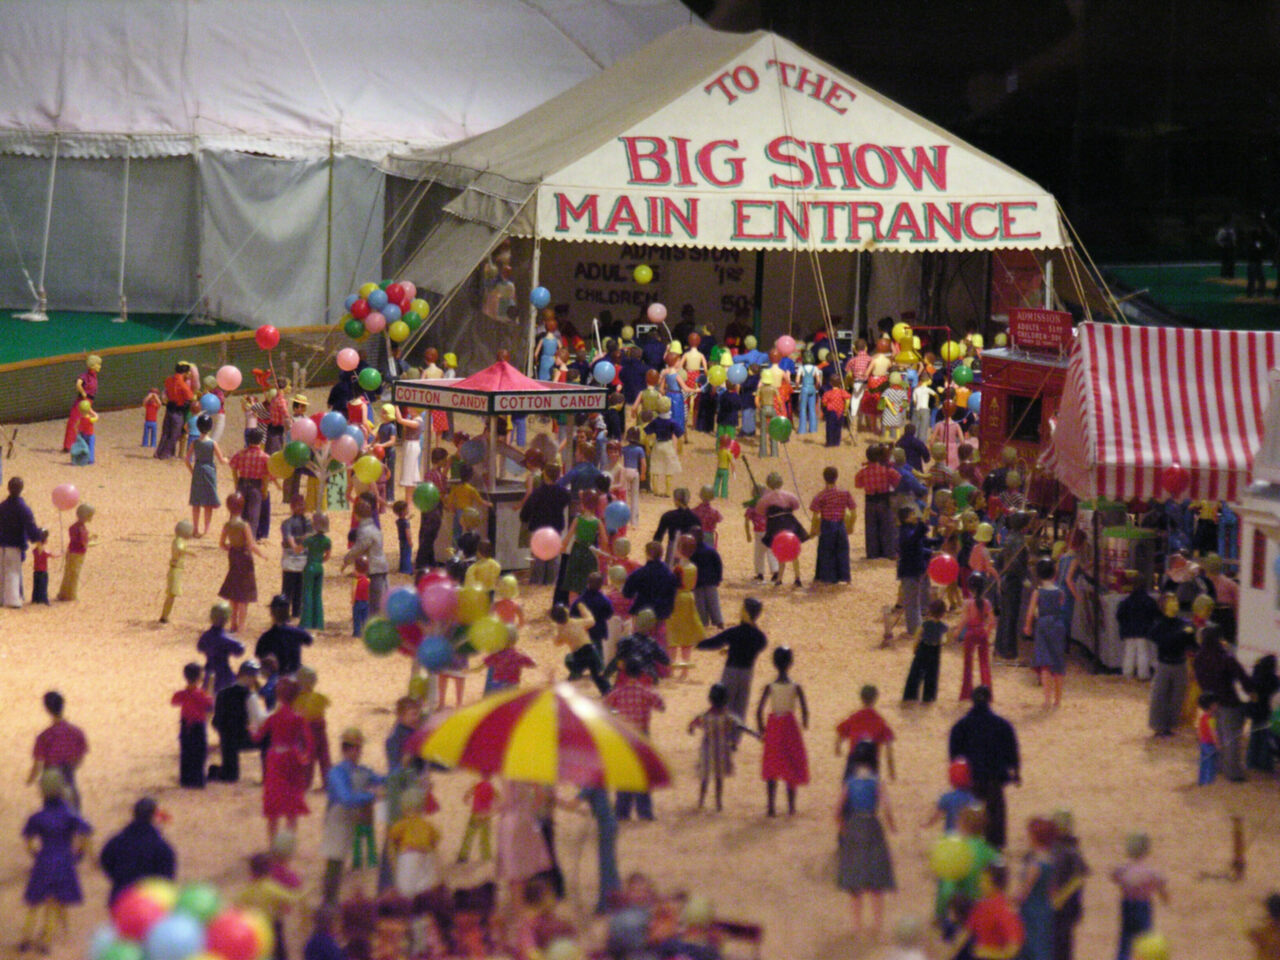 The Big Show Main Entrance Ringling miniature.